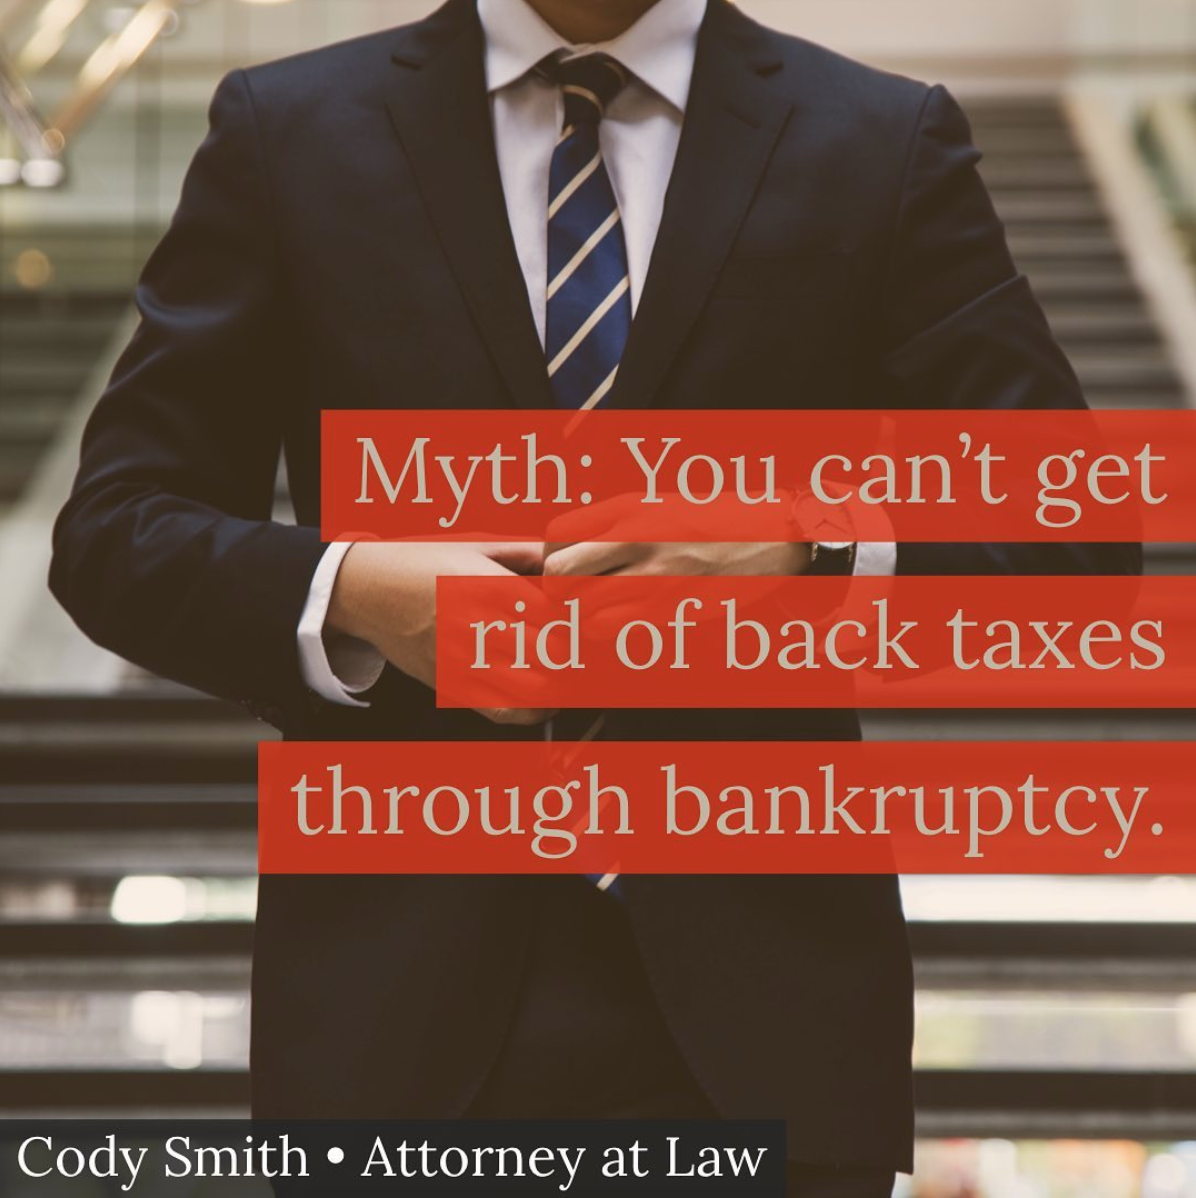 MYTH: You can't get rid of back taxes in bankruptcy.